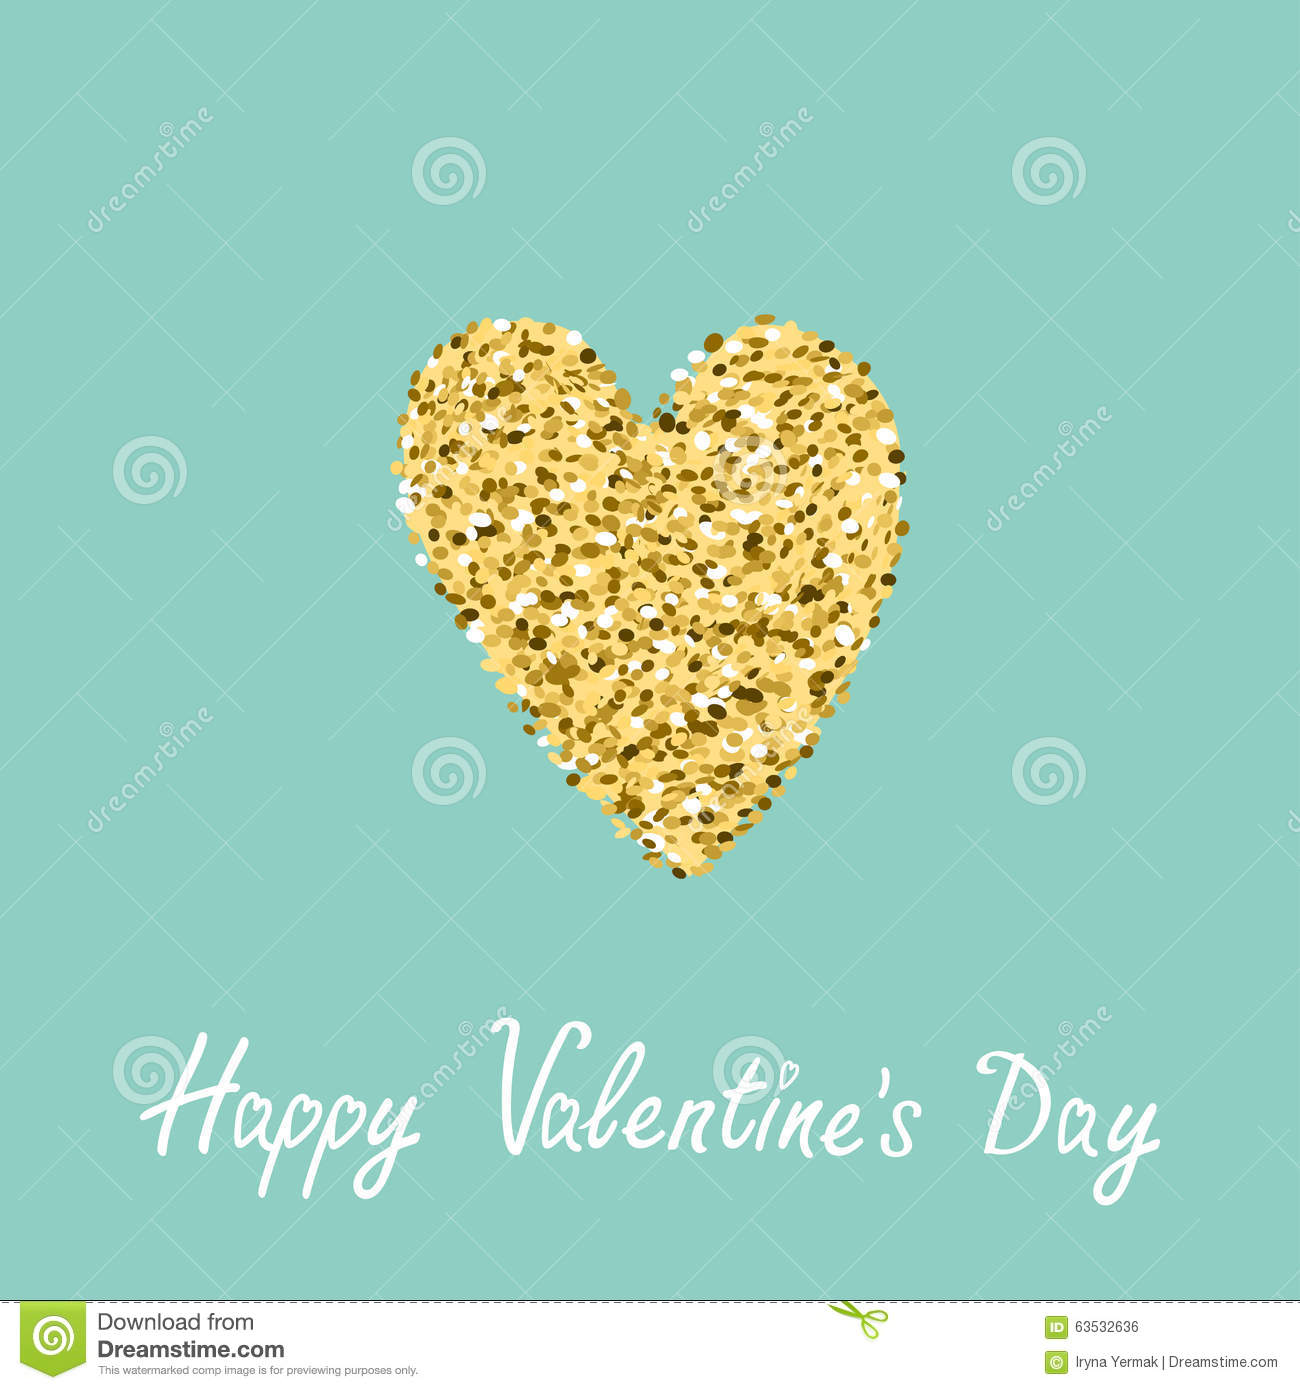 97afa98e4214 Gold glitter heart. Flat design Blue background. Happy Valentines day